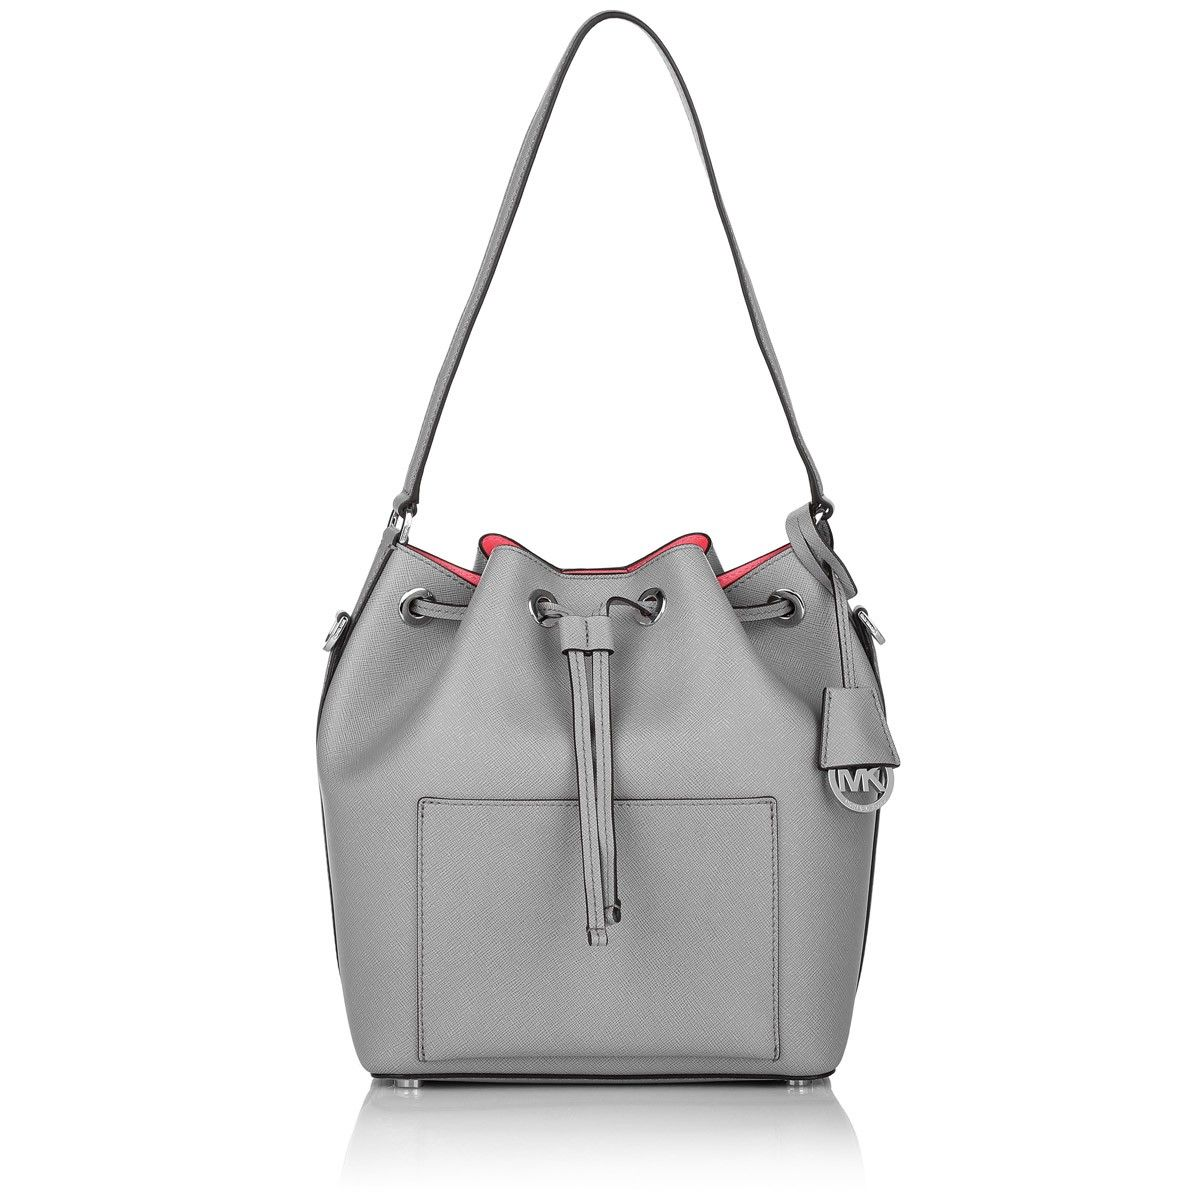 f8154d715f7da4 MICHAEL Michael Kors Greenwich Small Saffiano Leather Bucket Bag Grey